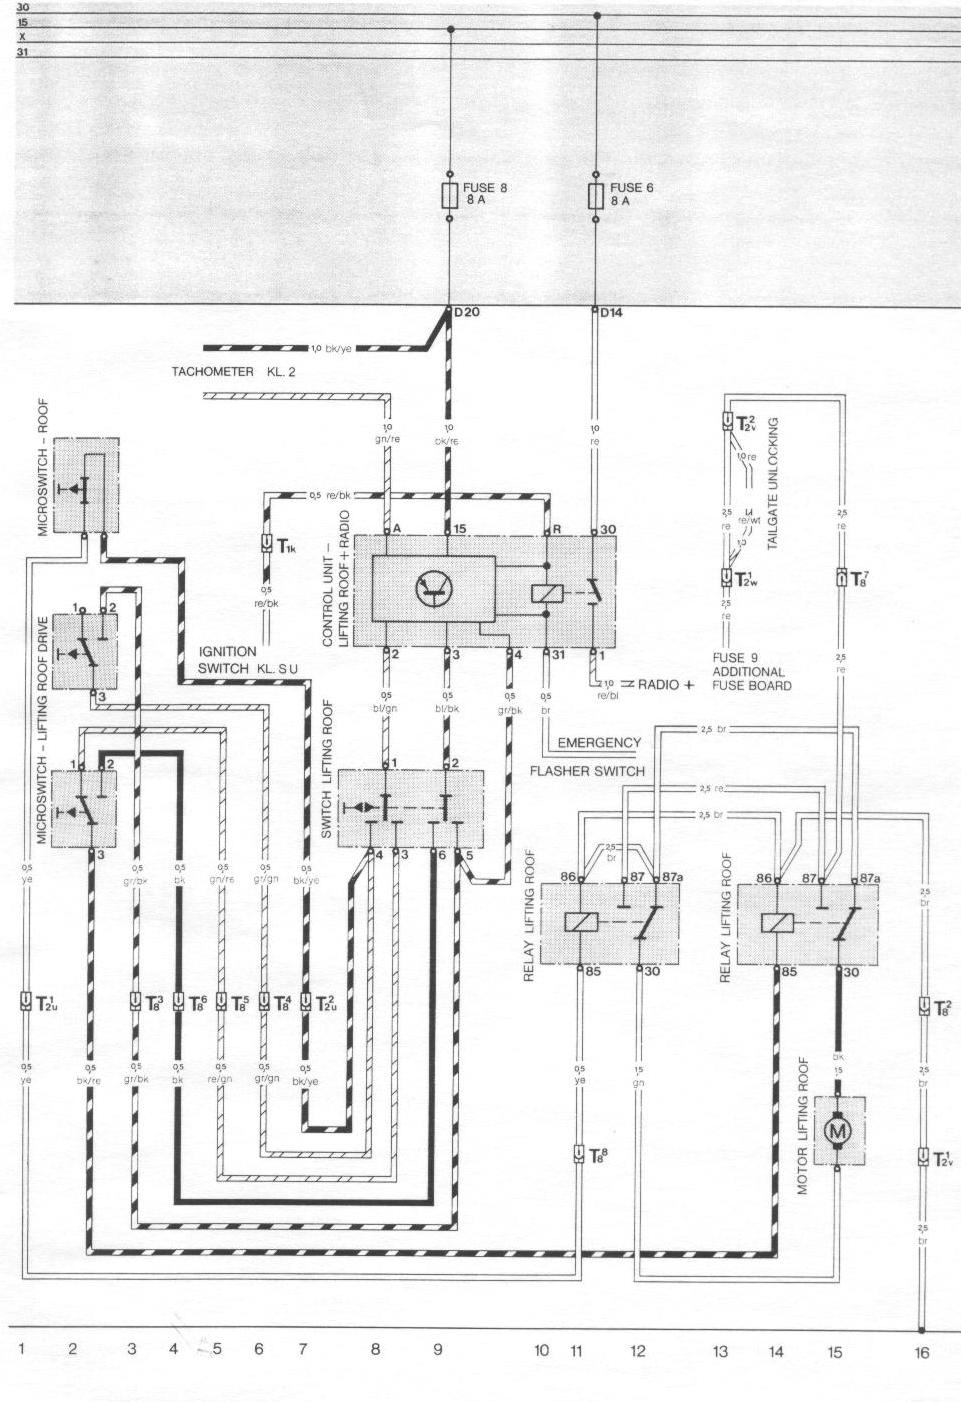 hight resolution of pelican parts porsche 924 944 electrical diagrams 1983 porsche 944 wiring diagram 83 porsche 944 wiring diagram